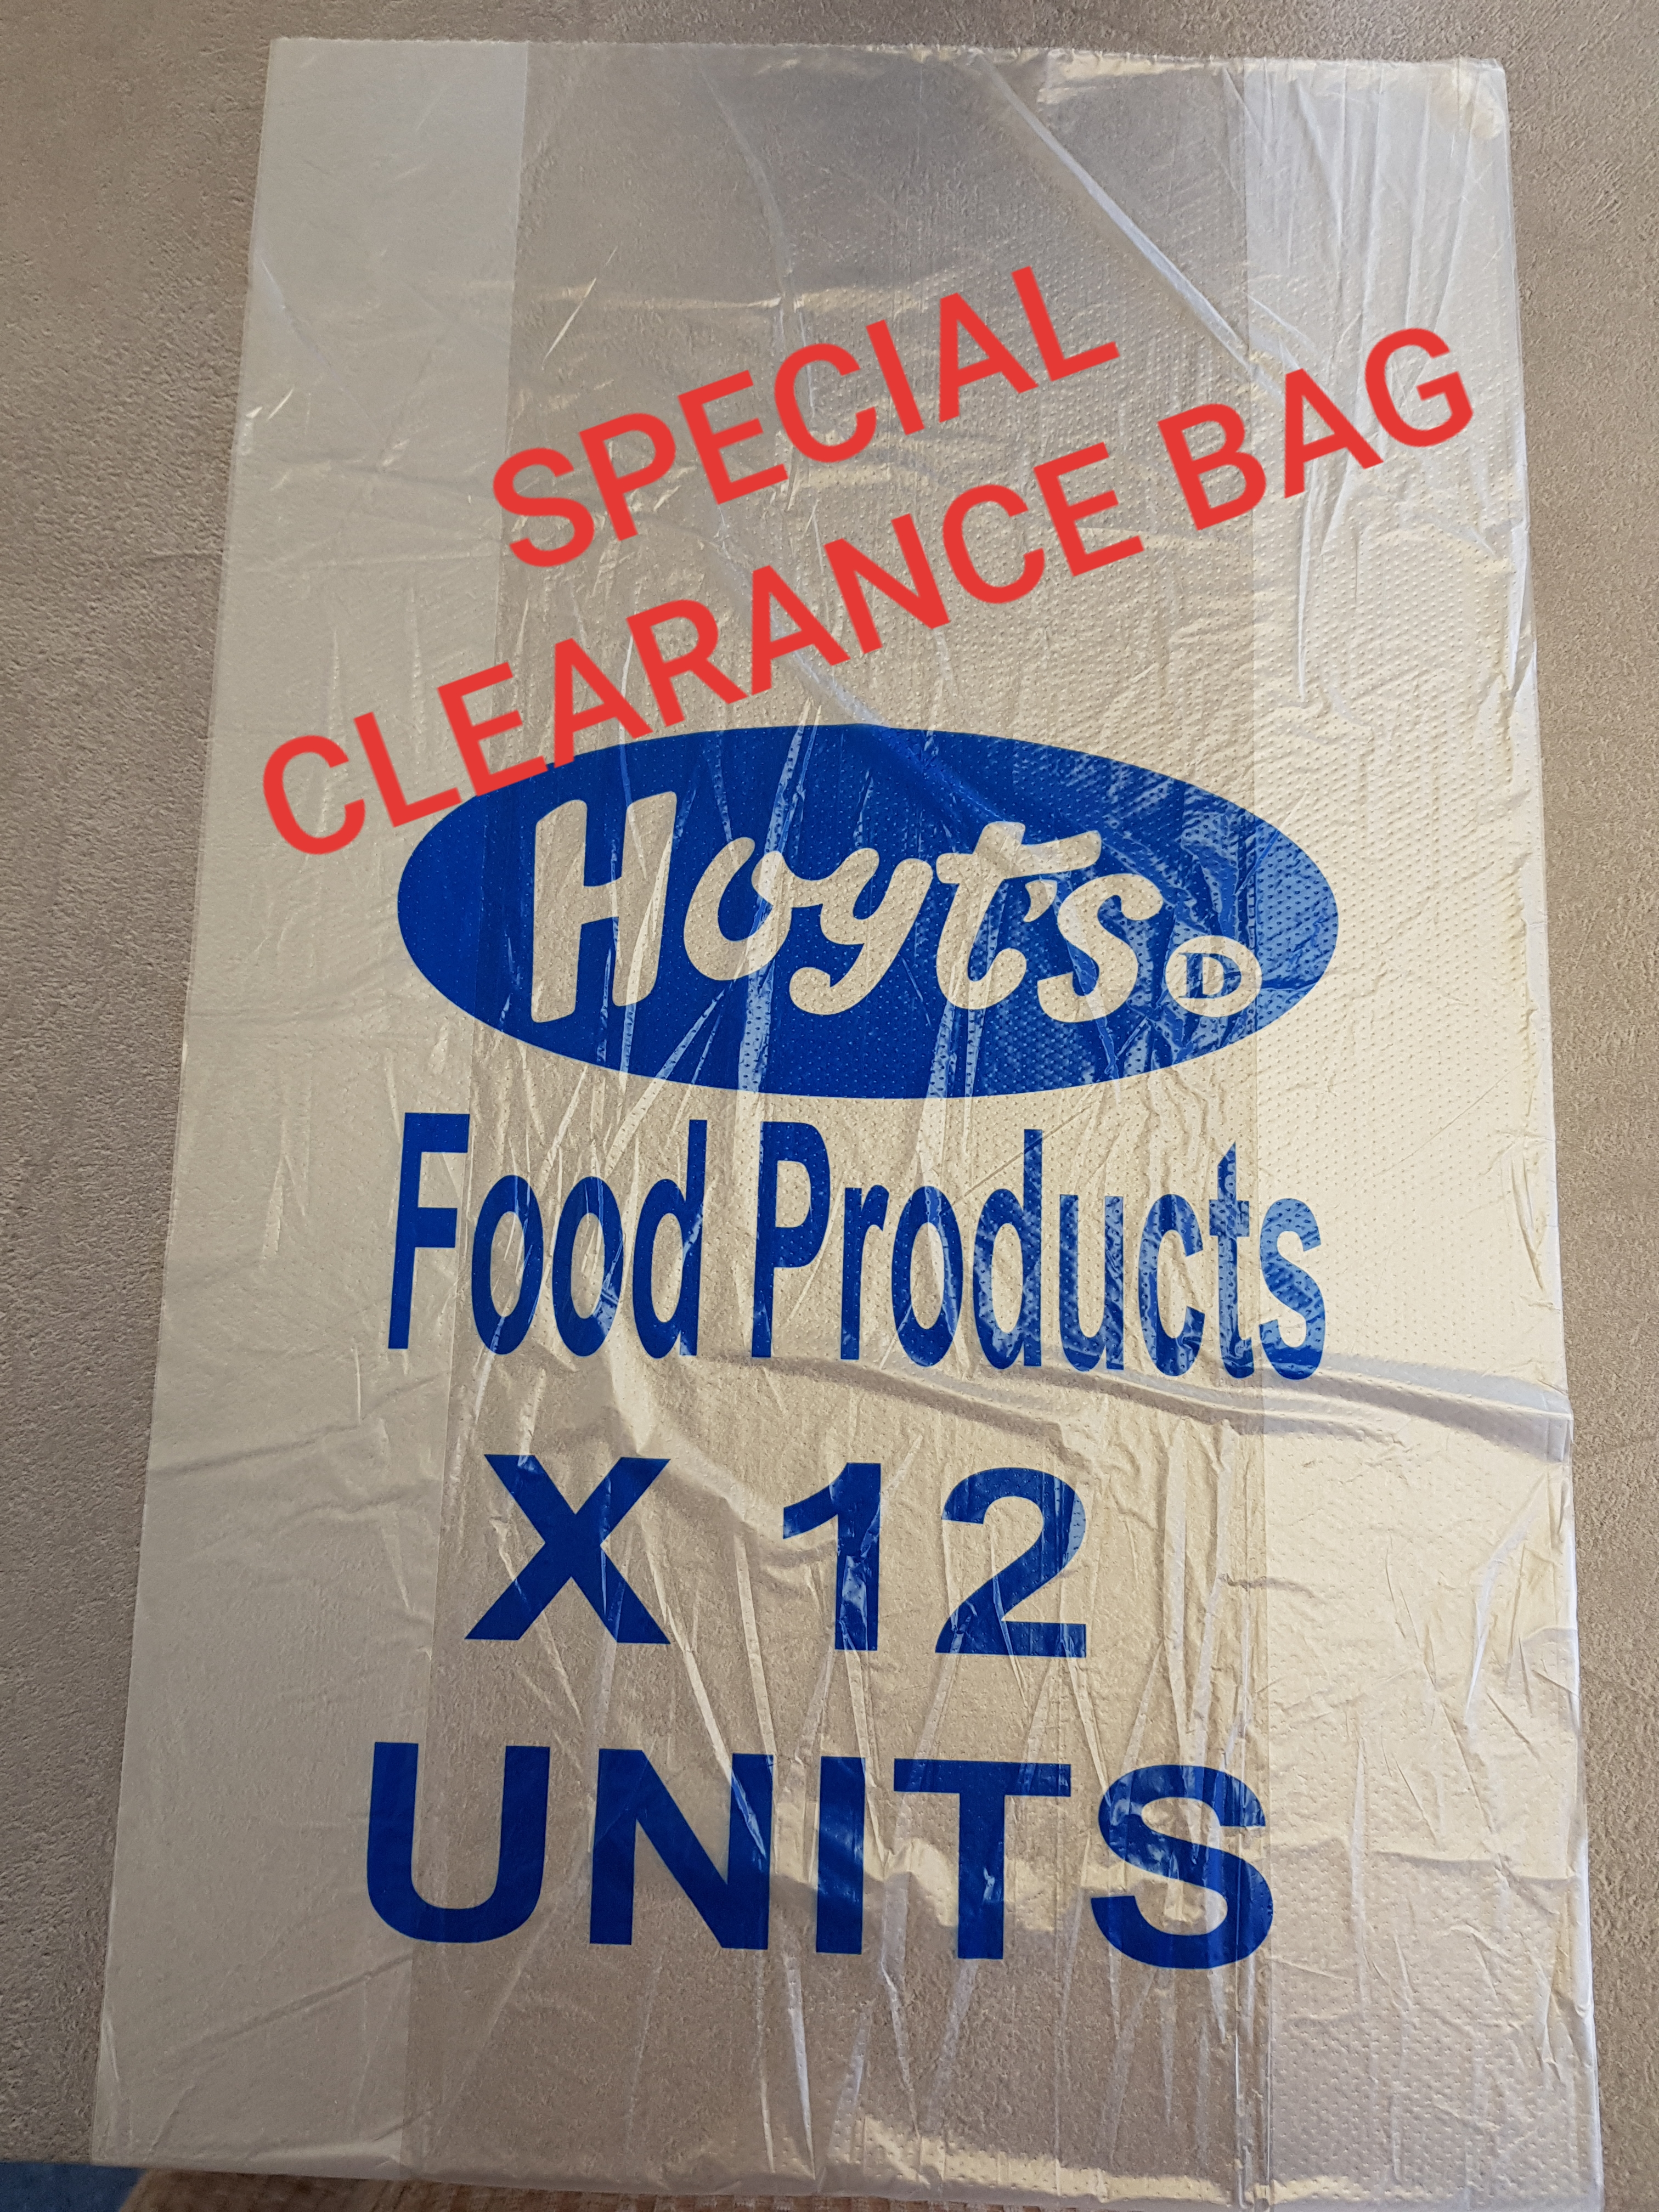 Special Clearance Produce Bags